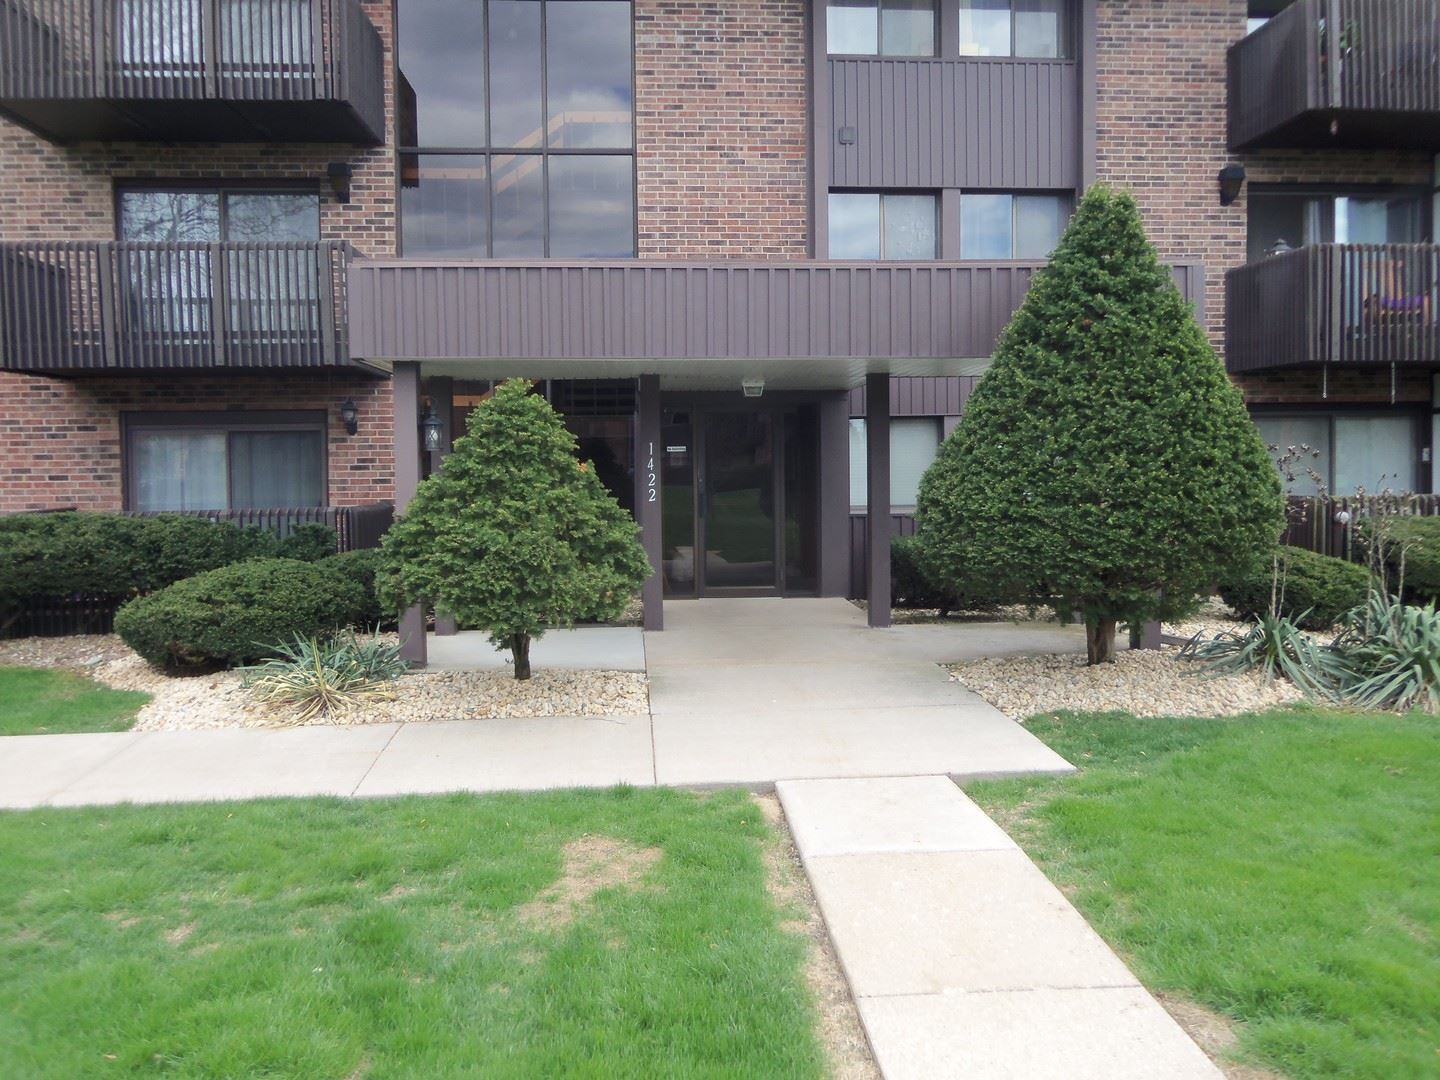 Photo of 1422 Woodbridge Road #1A, Joliet, IL 60436 (MLS # 11057612)